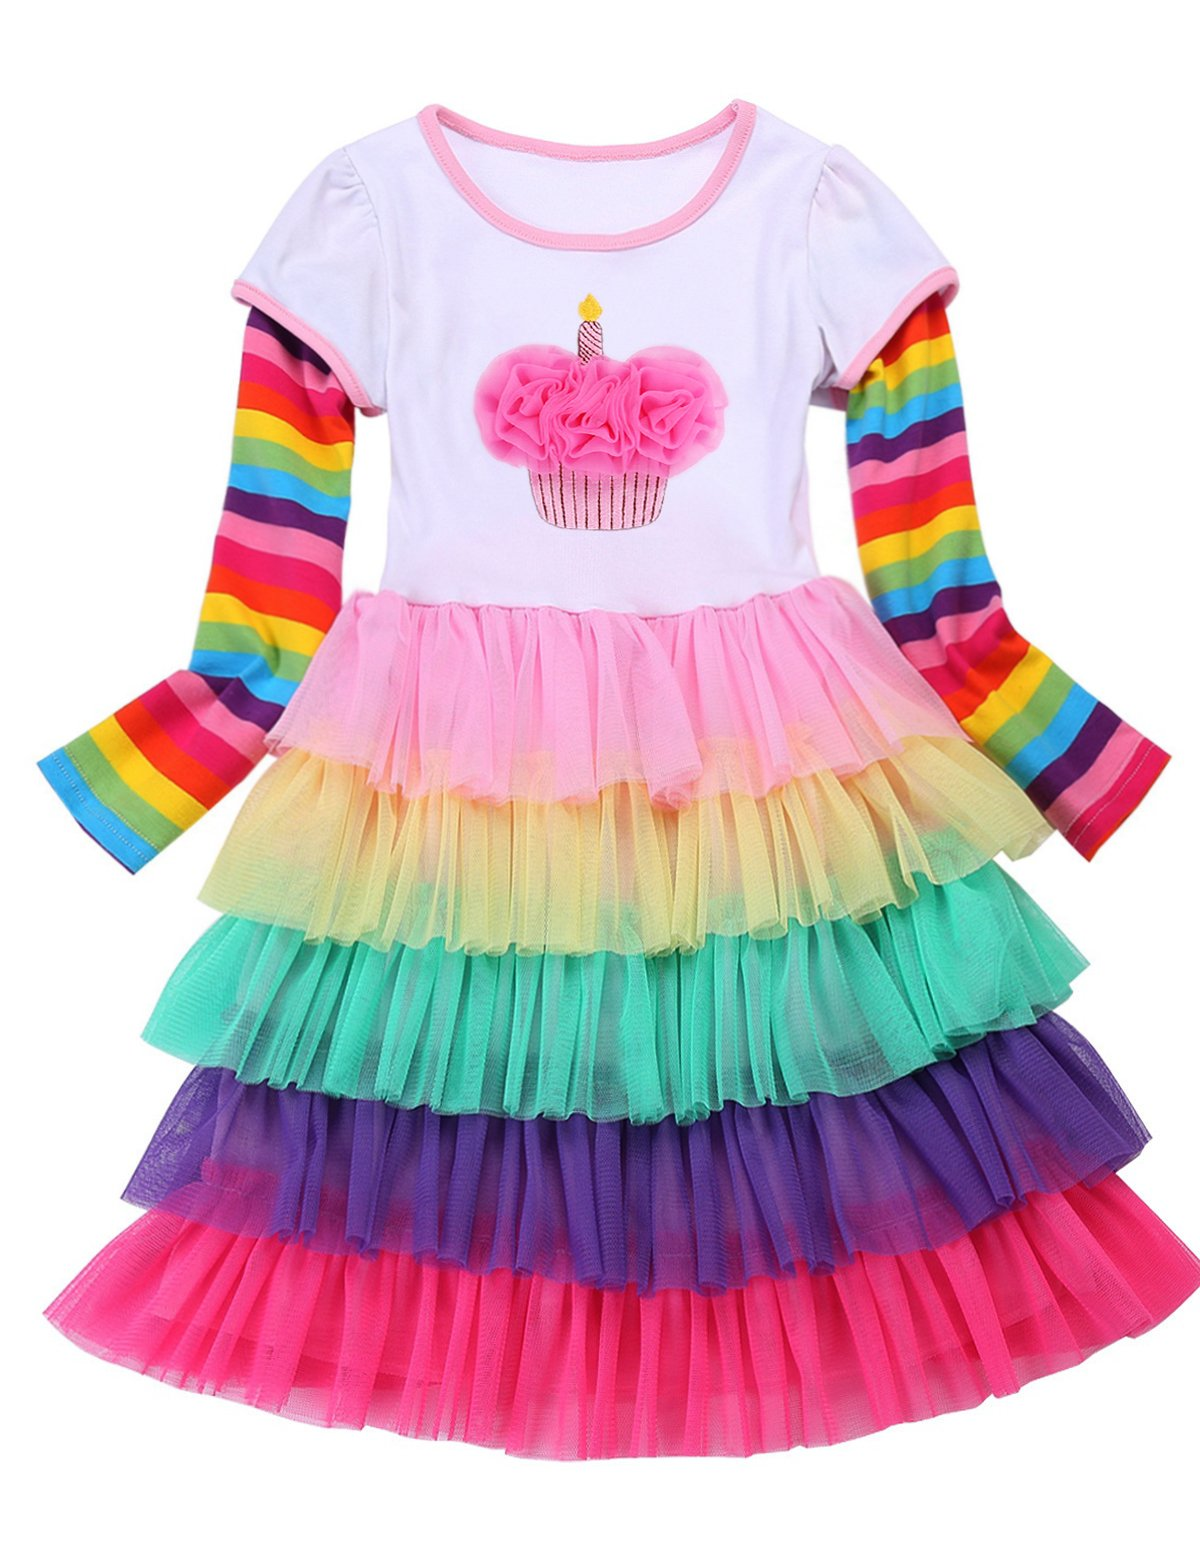 PrinceSasa Baby Girl Fall Clothes Little Sister Rainbow Dress,Cake,2-3 Years(Size 100)